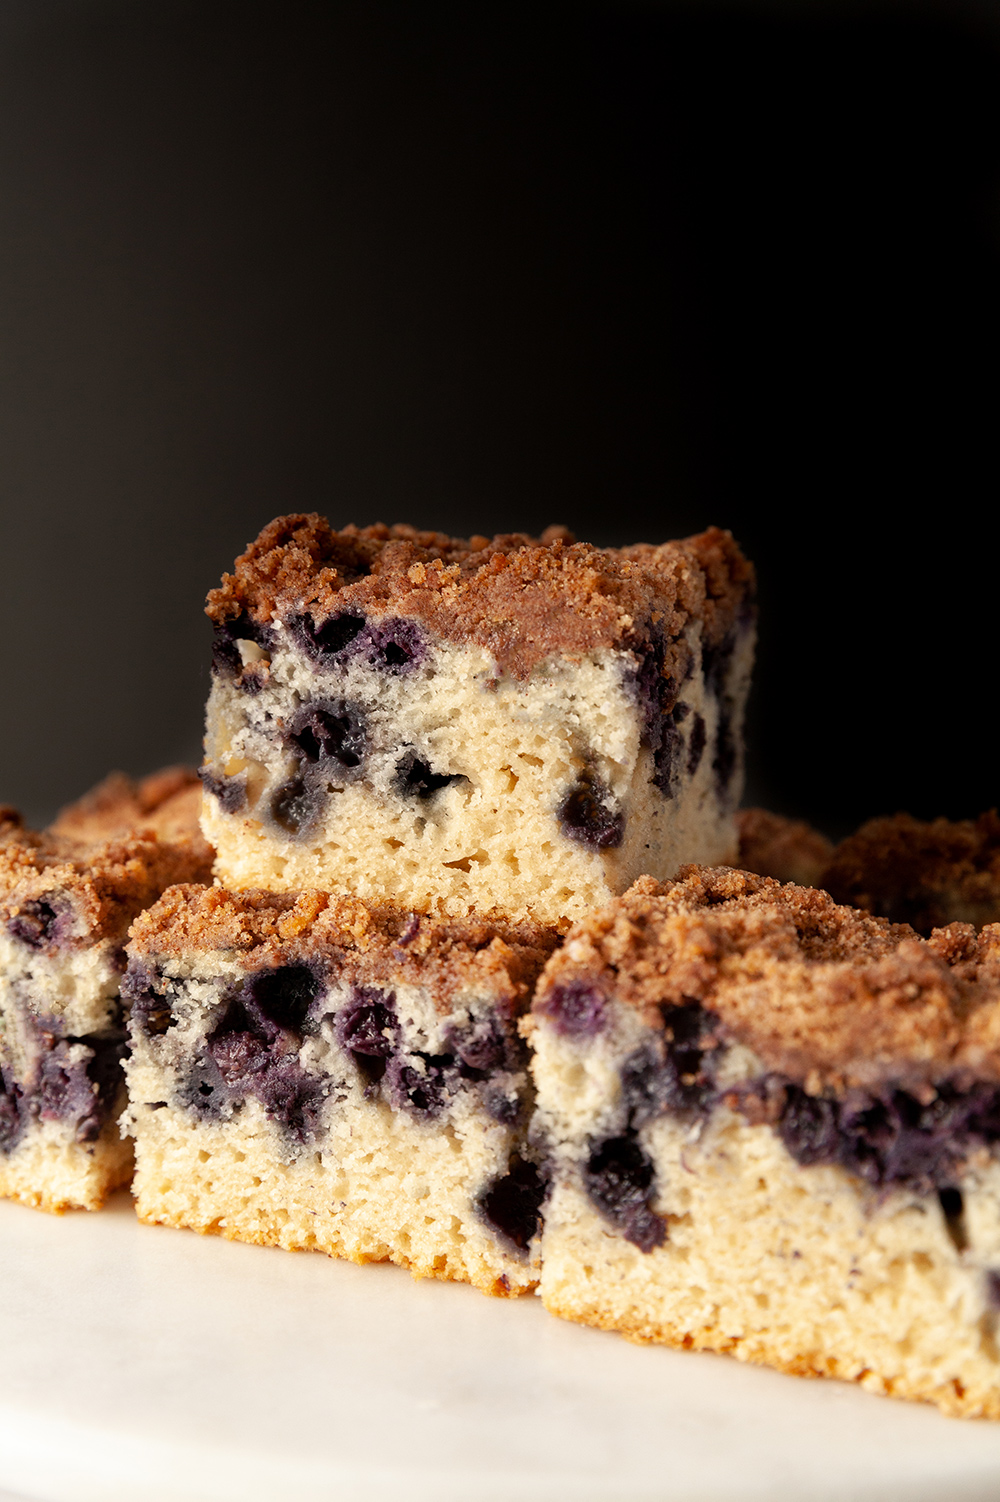 eggless lemon blueberry sheet cake against a black background